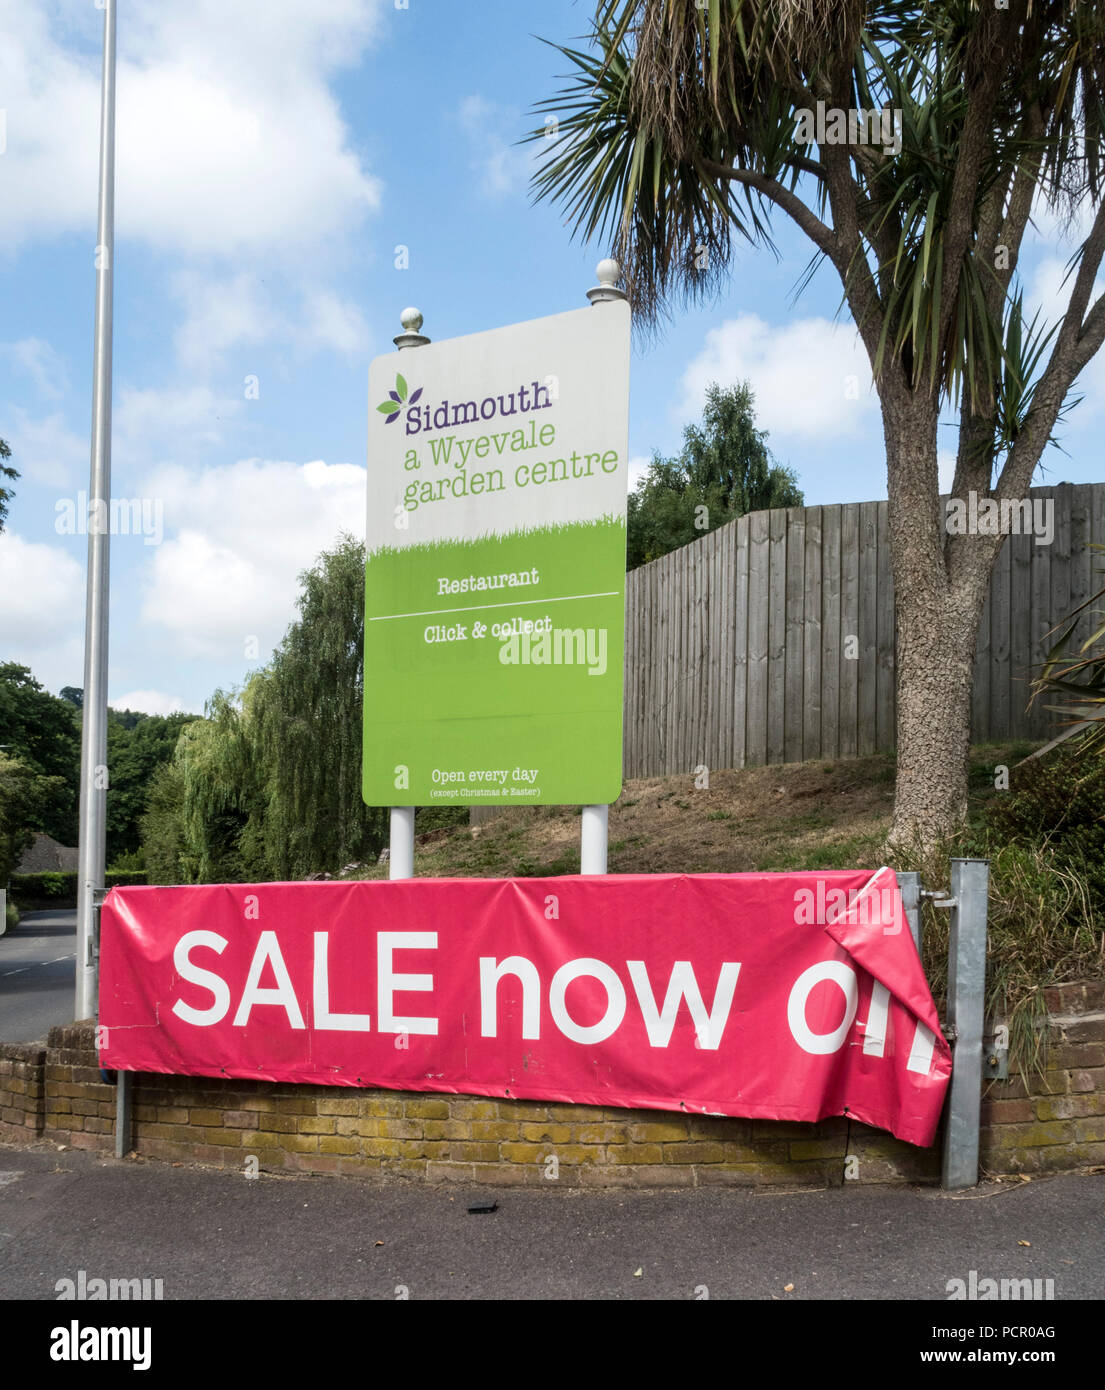 Wyevale up for sale.... Wyevale garden centre, Sidmouth. The Wyevale chain, including the Sidmouth store, is up for sale. - Stock Image